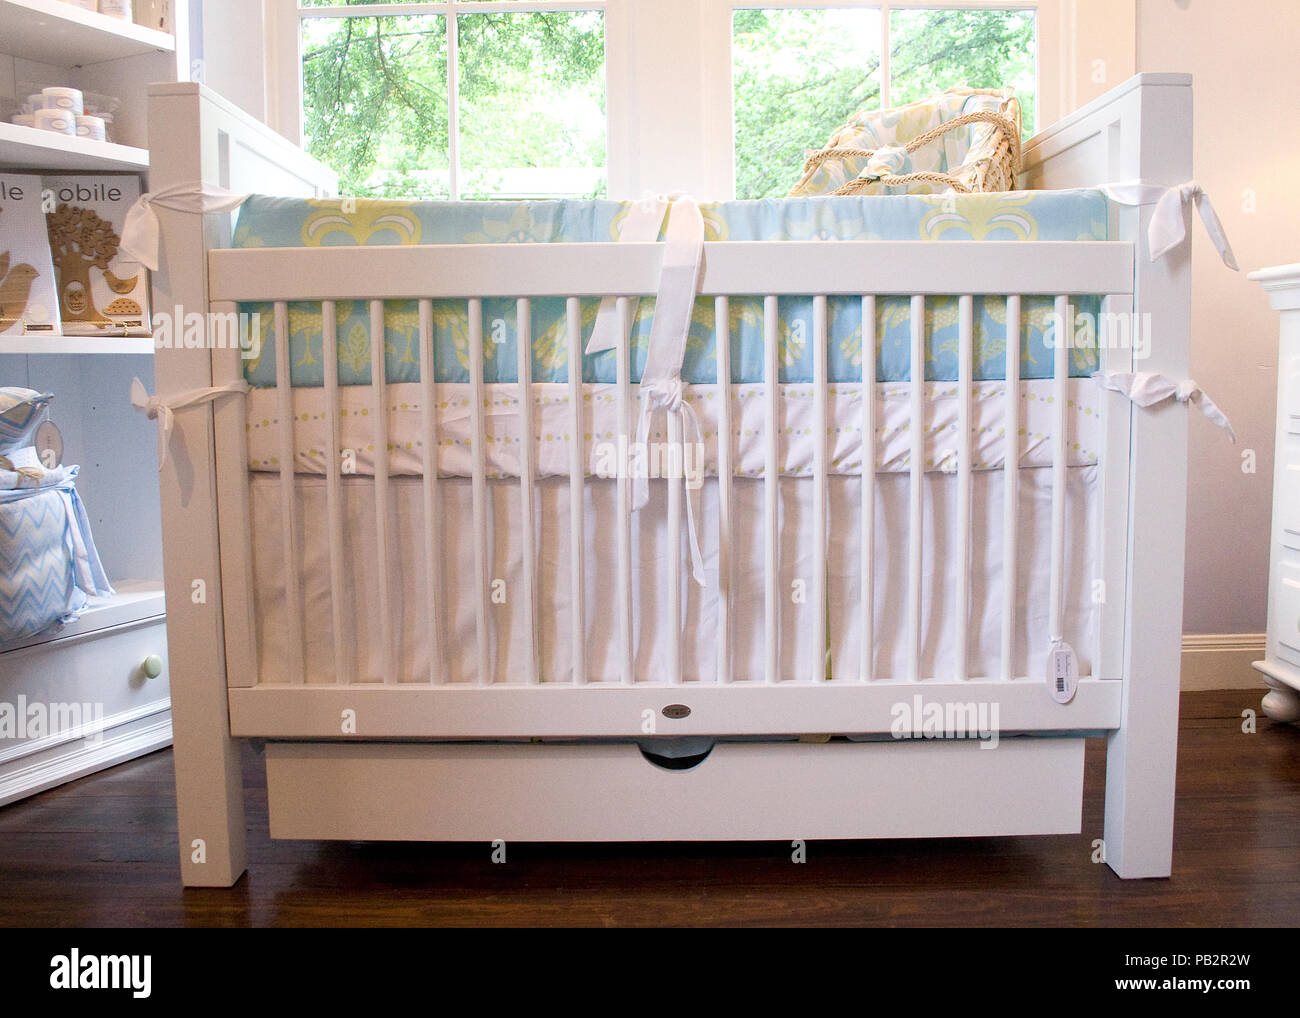 Unique View Of Baby Crib Stock Photos & Unique View Of Baby ...